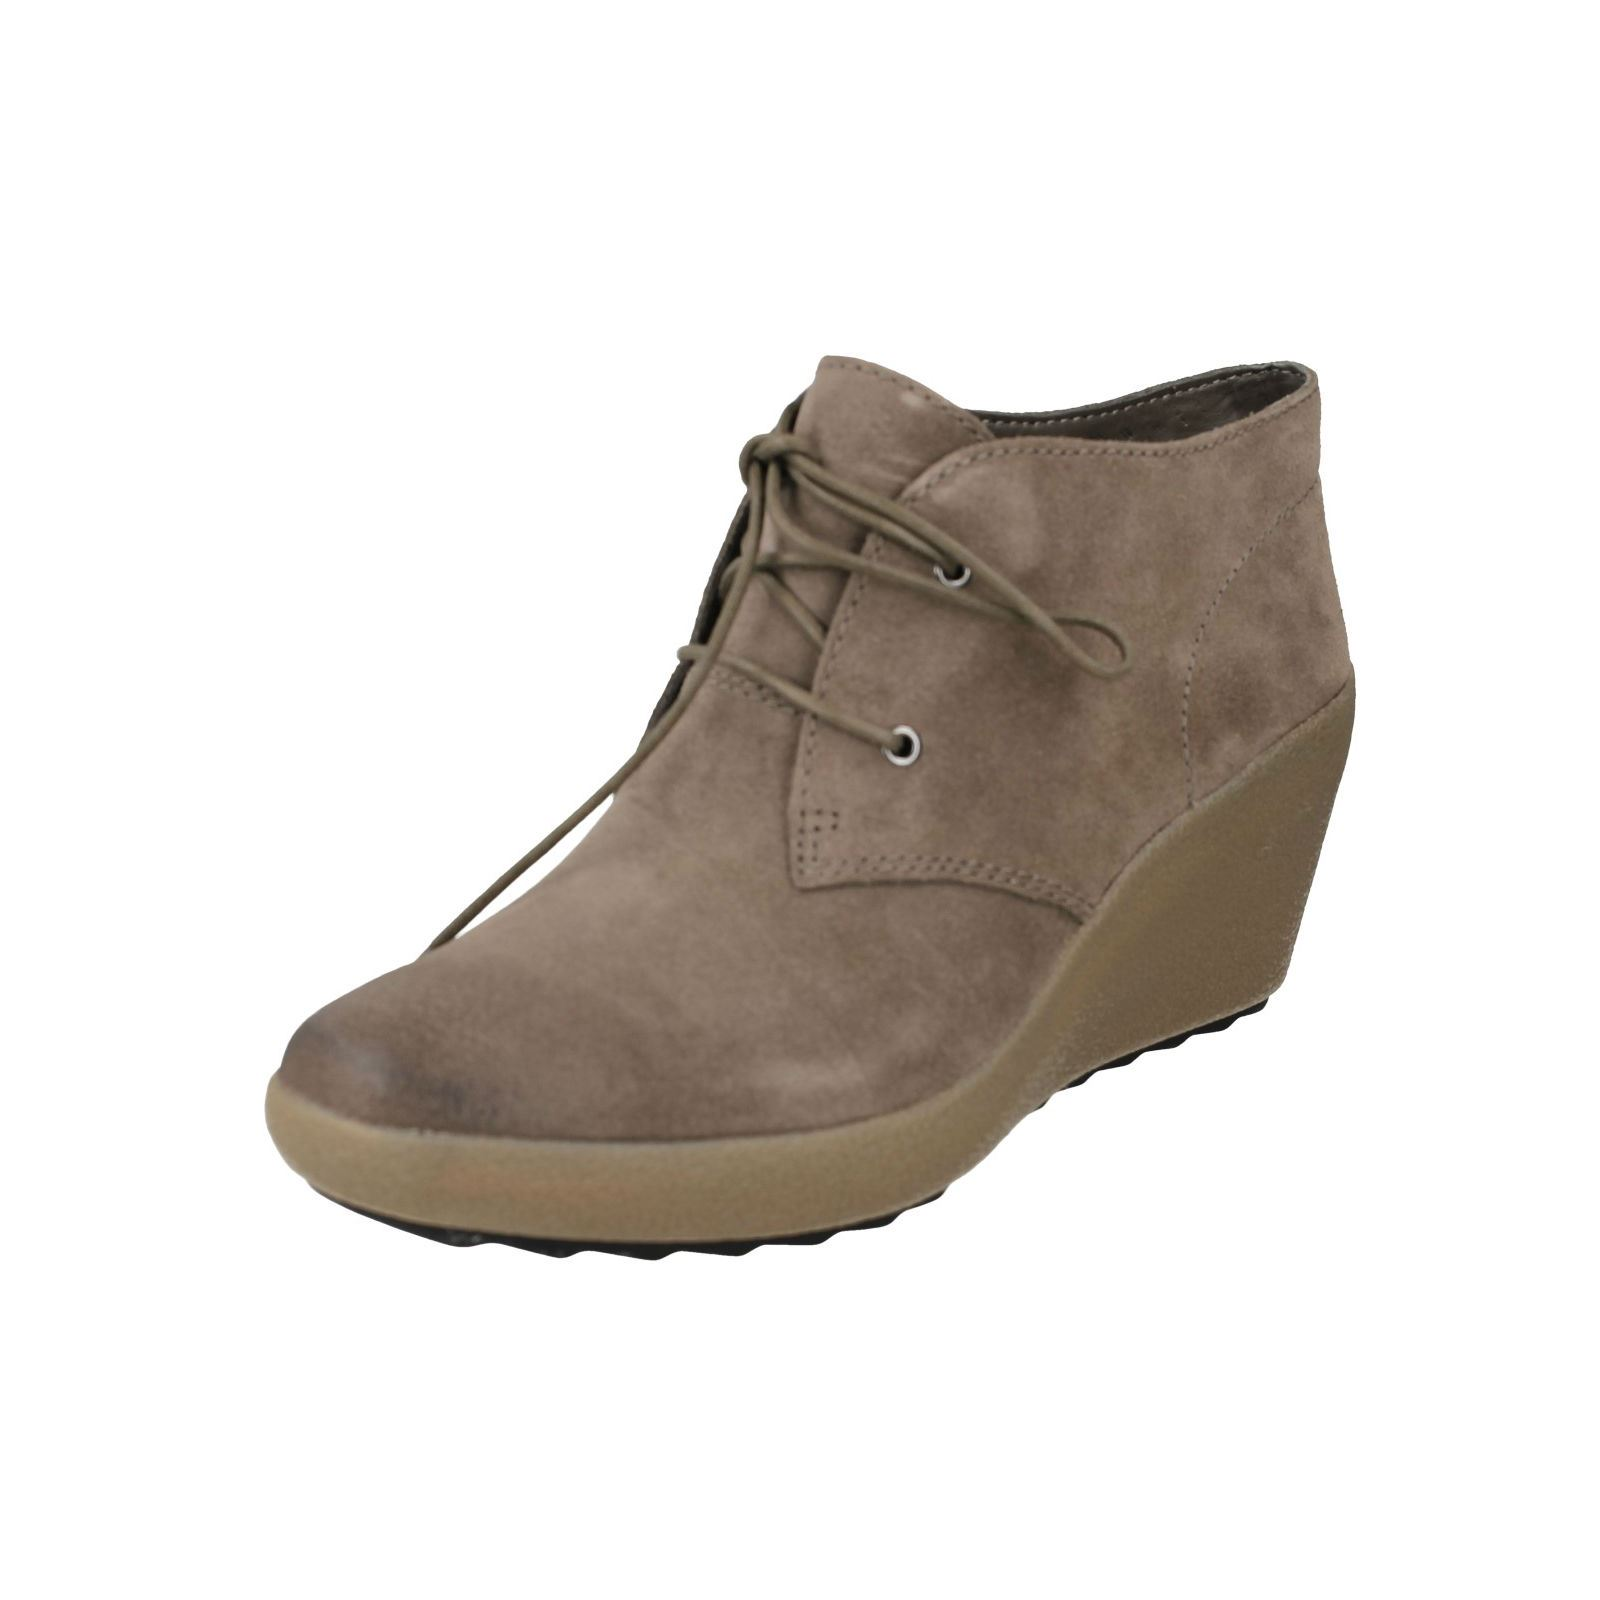 clarks wedge boots